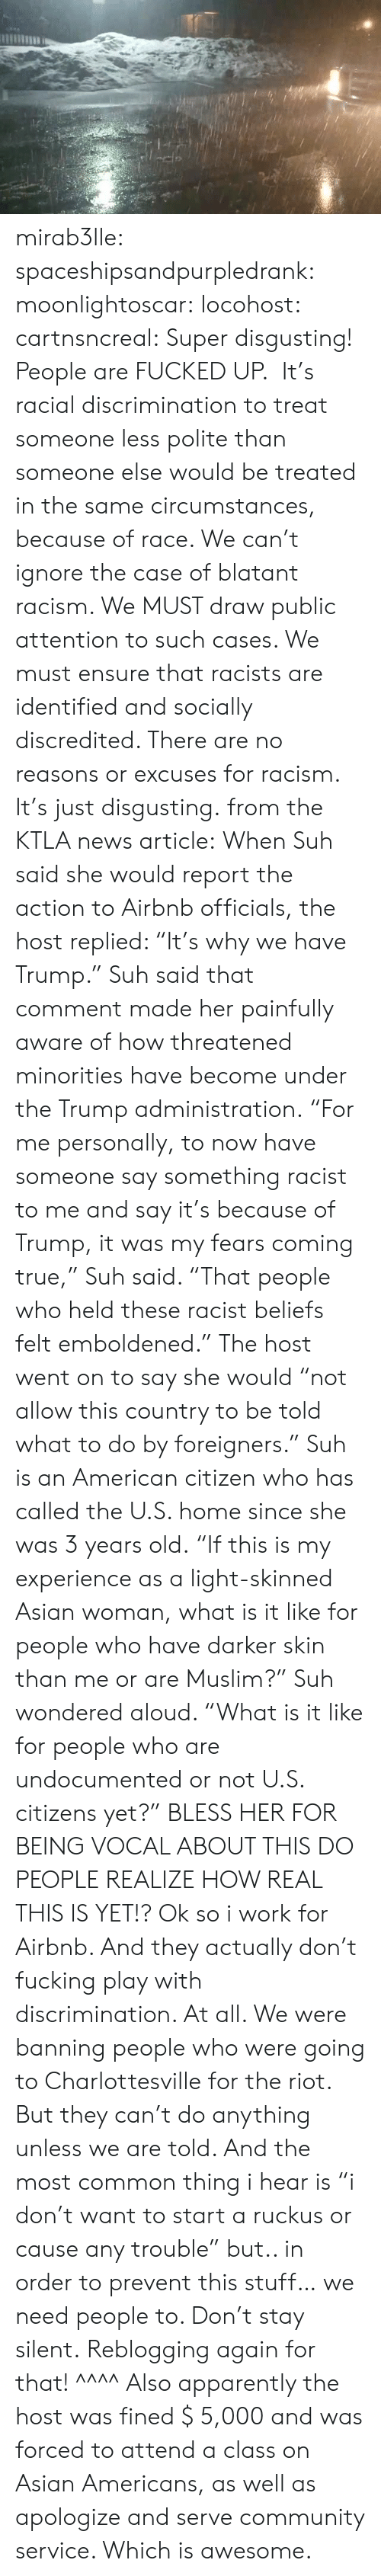 """Apparently, Asian, and Community: mirab3lle: spaceshipsandpurpledrank:   moonlightoscar:  locohost:  cartnsncreal:    Super disgusting! People are FUCKED UP. It's racial discrimination to treat someone less polite than someone else would be treated in the same circumstances, because of race. We can't ignore the case of blatant racism. We MUST draw public attention to such cases. We must ensure that racists are identified and socially discredited. There are no reasons or excuses for racism. It's just disgusting.  from the KTLA news article:  When Suh said she would report the action to Airbnb officials, the host replied: """"It's why we have Trump."""" Suh said that comment made her painfully aware of how threatened minorities have become under the Trump administration. """"For me personally, to now have someone say something racist to me and say it's because of Trump, it was my fears coming true,"""" Suh said. """"That people who held these racist beliefs felt emboldened."""" The host went on to say she would """"not allow this country to be told what to do by foreigners."""" Suh is an American citizen who has called the U.S. home since she was 3 years old. """"If this is my experience as a light-skinned Asian woman, what is it like for people who have darker skin than me or are Muslim?"""" Suh wondered aloud. """"What is it like for people who are undocumented or not U.S. citizens yet?""""    BLESS HER FOR BEING VOCAL ABOUT THIS DO PEOPLE REALIZE HOW REAL THIS IS YET!?   Ok so i work for Airbnb.  And they actually don't fucking play with discrimination. At all. We were banning people who were going to Charlottesville for the riot.  But they can't do anything unless we are told. And the most common thing i hear is """"i don't want to start a ruckus or cause any trouble"""" but.. in order to prevent this stuff… we need people to. Don't stay silent.   Reblogging again for that! ^^^^ Also apparently the host was fined $ 5,000 and was forced to attend a class on Asian Americans, as well as apologize and serve c"""